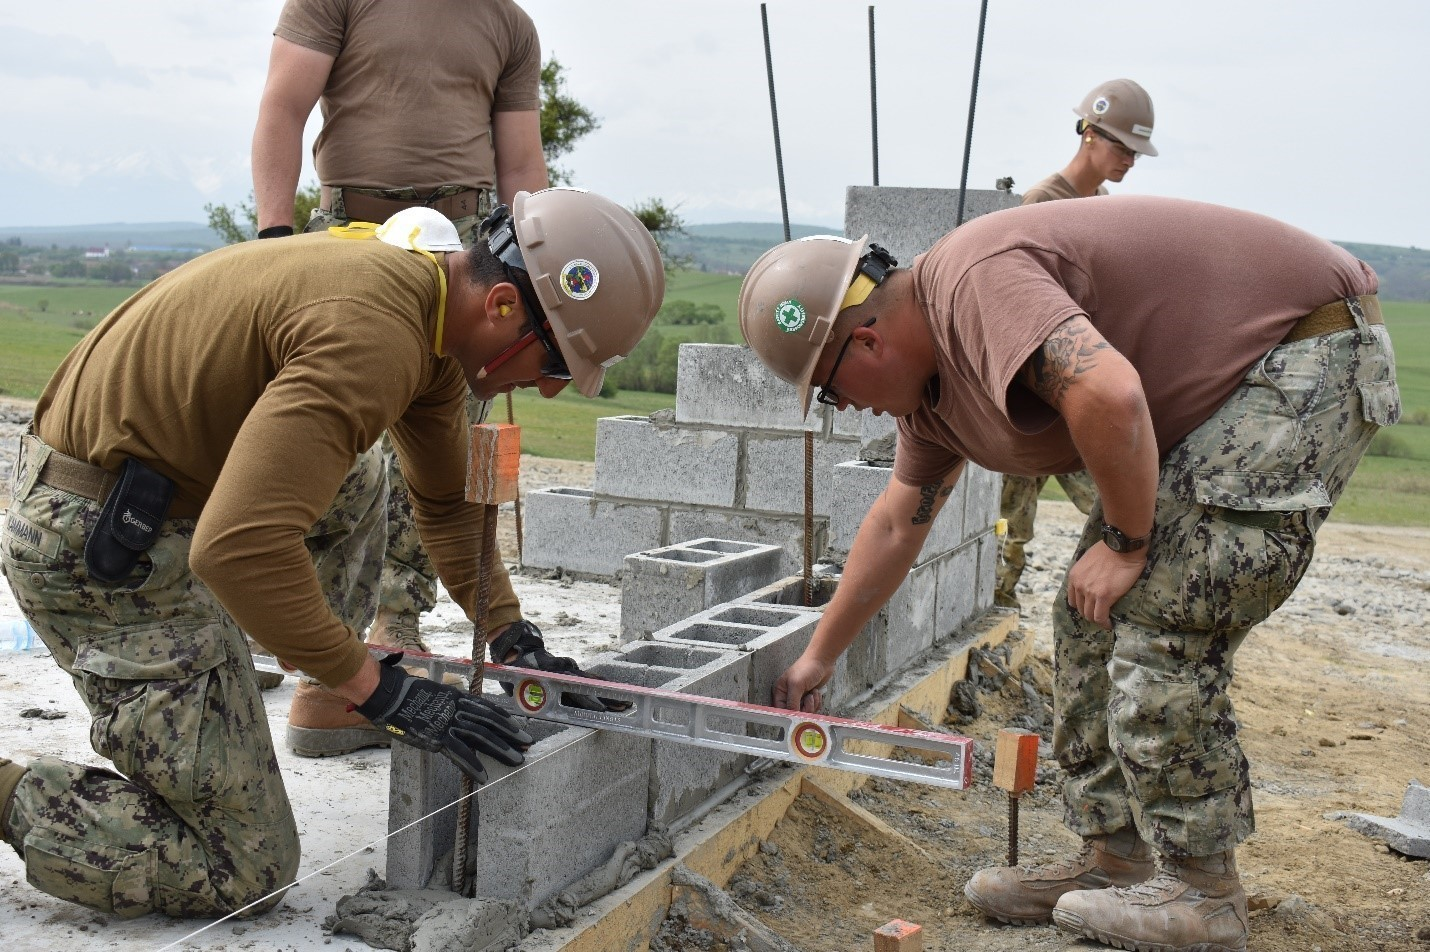 Constructionman, Construction Electrician Striker Jimmy Kammann and Steelworker 2nd Class Zachary McClellan level and place concrete blocks for the wall of an Operations and Storage Building as a part of Resolute Castle 17 at Joint National Training Center, Cincu, Romania. Resolute Castle 17 is an exercise strengthening the NATO alliance and enhancing its capacity for joint training and response to threats within the region.